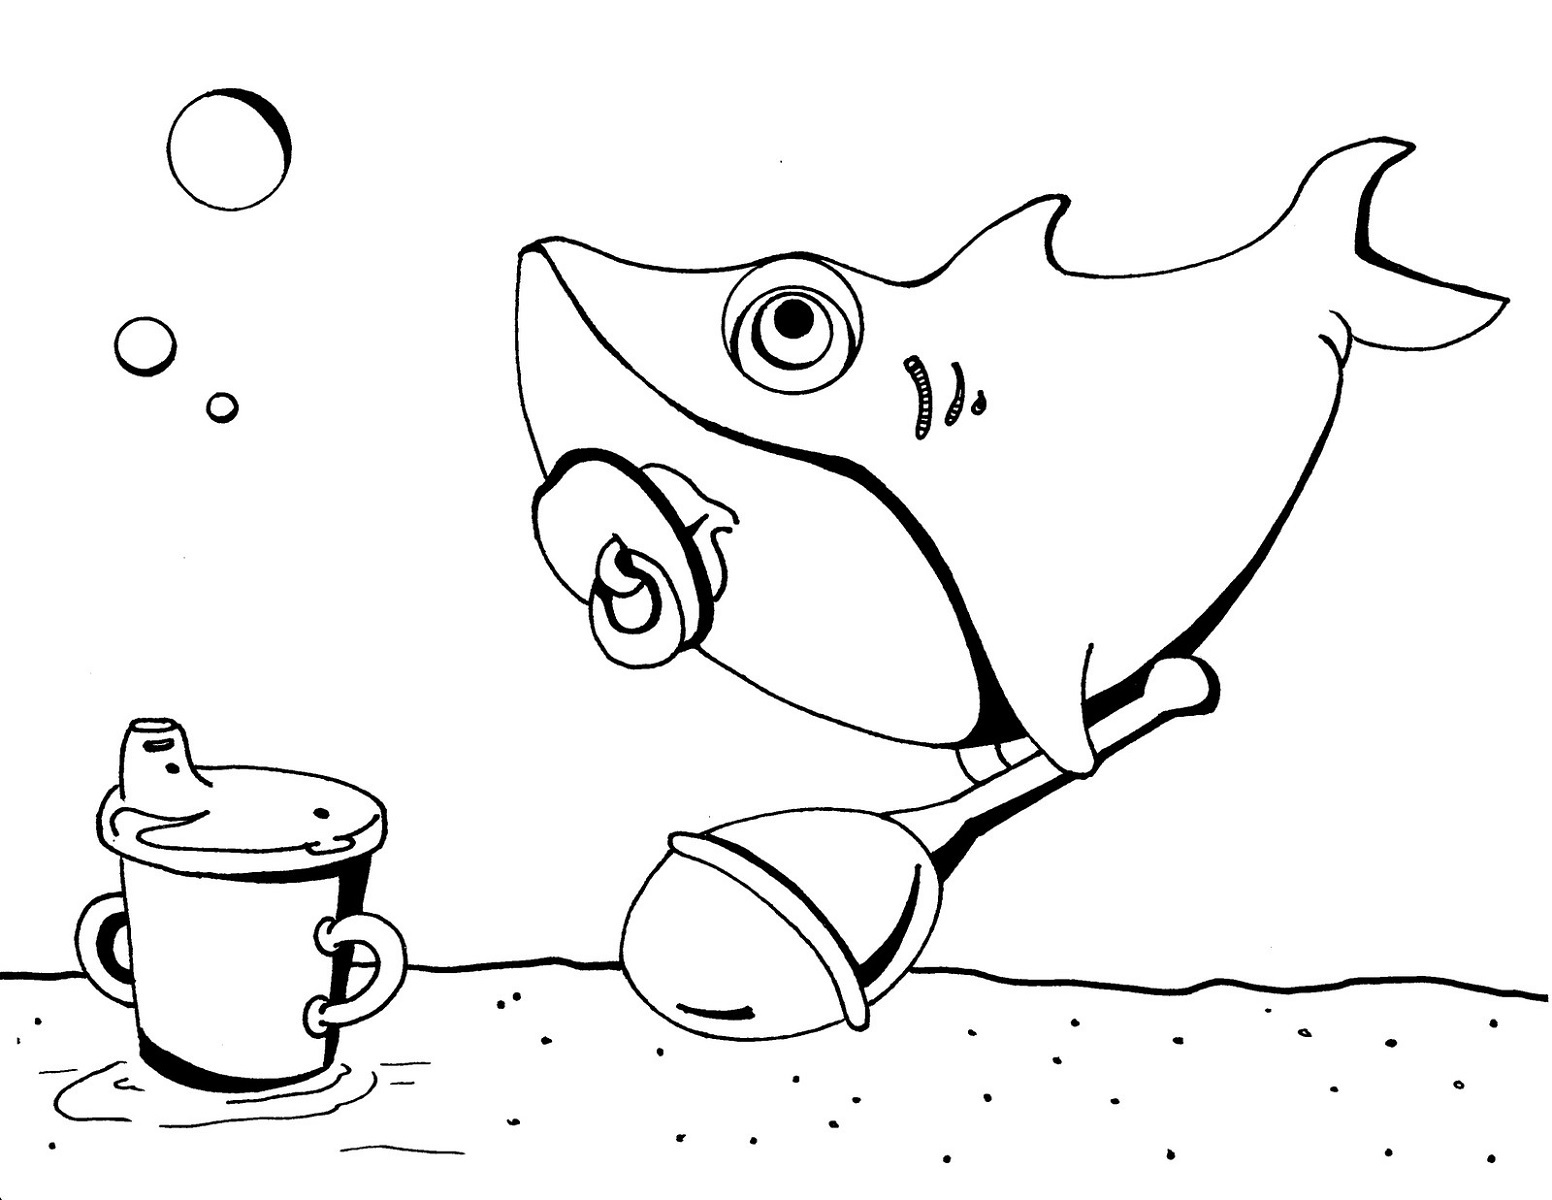 shark colour in a drawing of blacktip reef shark coloring page kids colour in shark